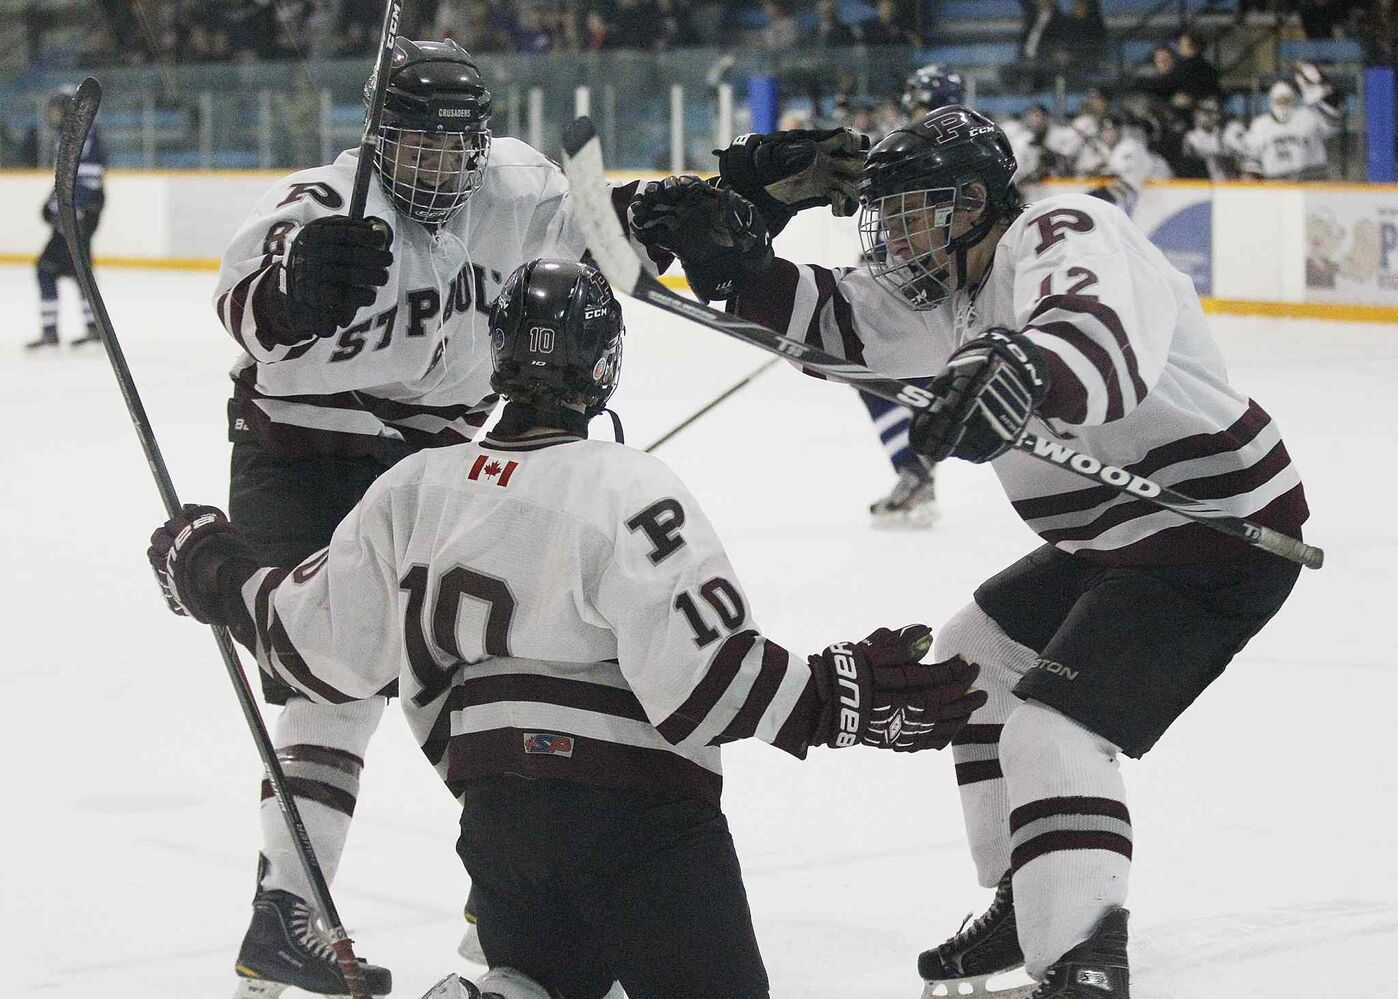 The St. Paul's Crusaders Cole Zadro (10), Alex Bouchard (left) and Xander Tachinski celebrate Zadro's goal against the River East Kodiaks. (JOHN WOODS / WINNIPEG FREE PRESS)